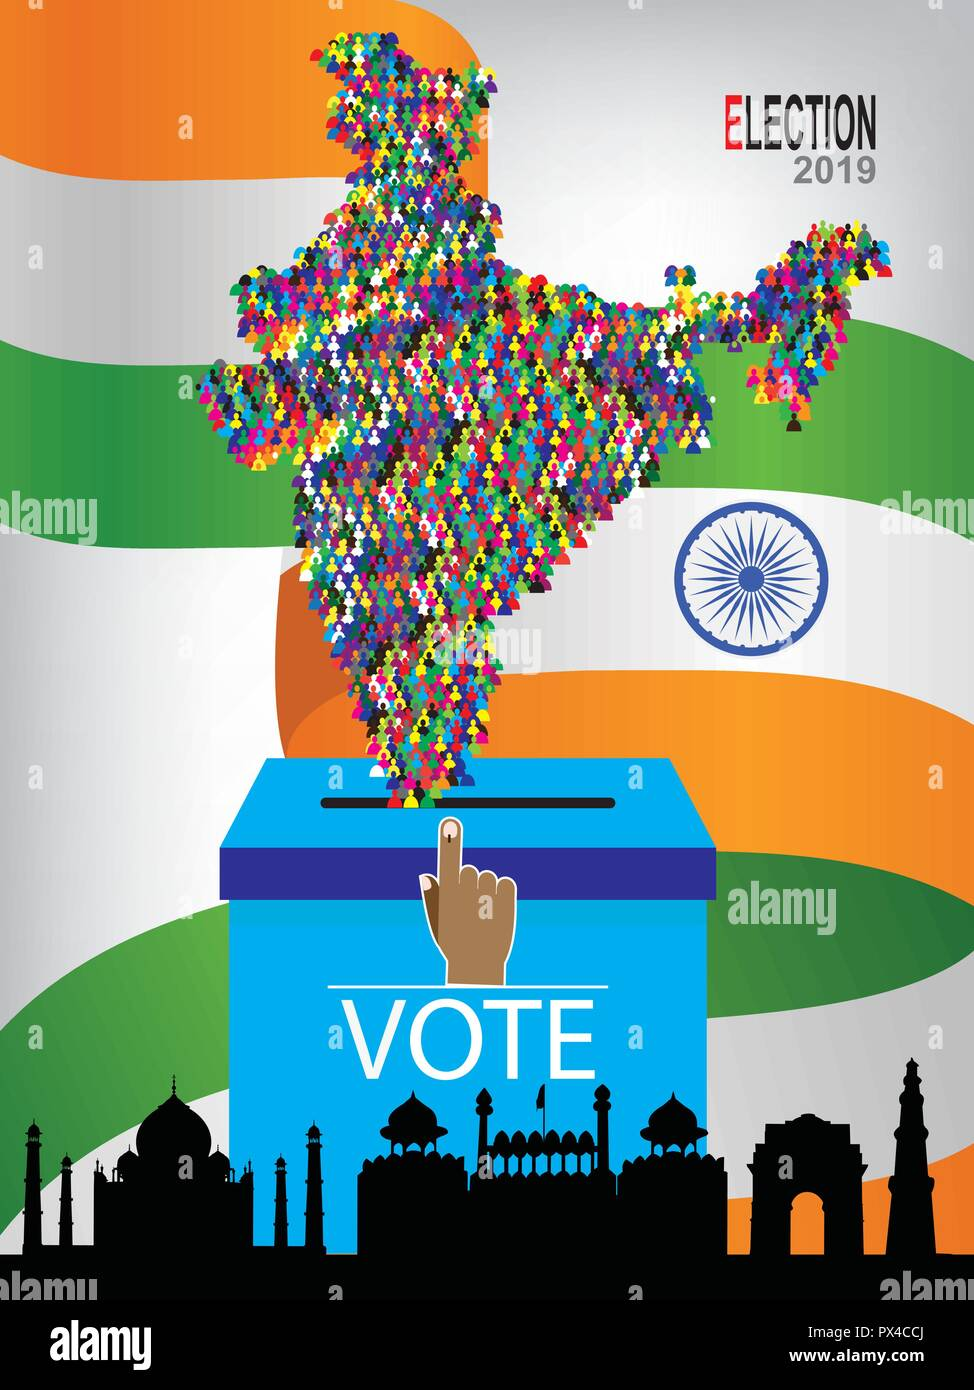 Image result for indian election 2019